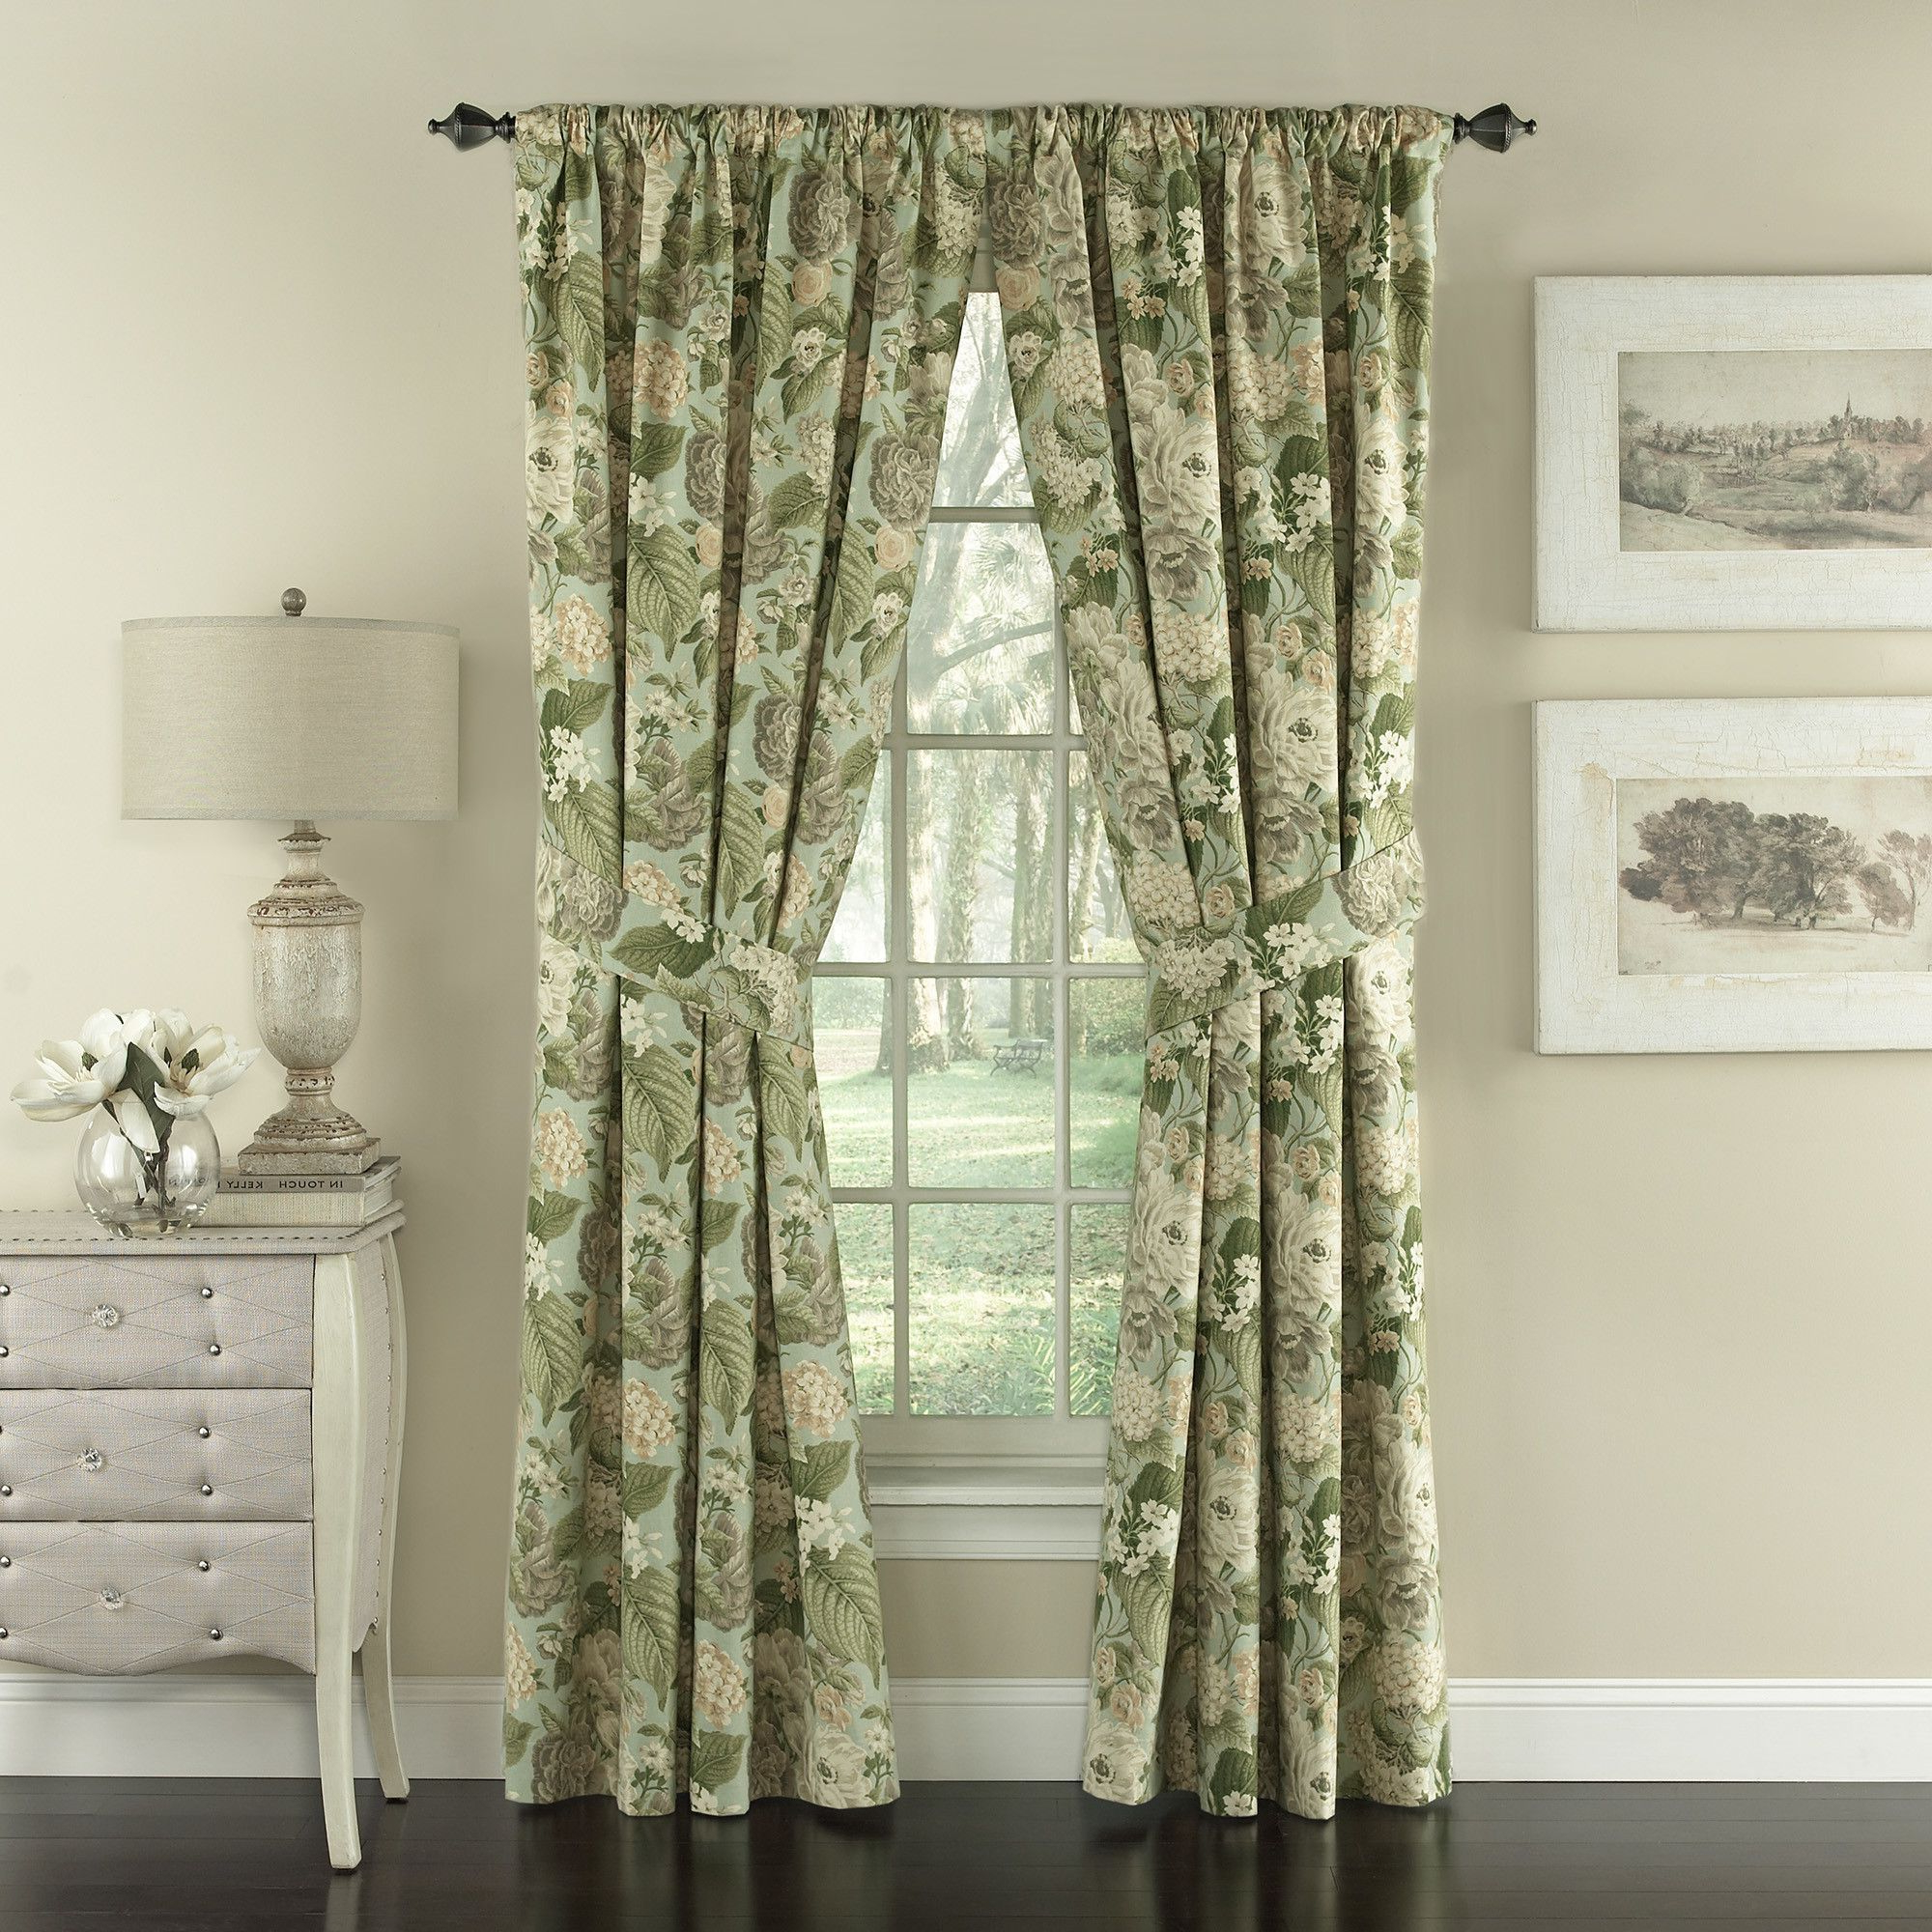 Garden Glory Nature/floral Semi Sheer Rod Pocket Curtain Inside Most Current Andorra Watercolor Floral Textured Sheer Single Curtain Panels (View 13 of 20)